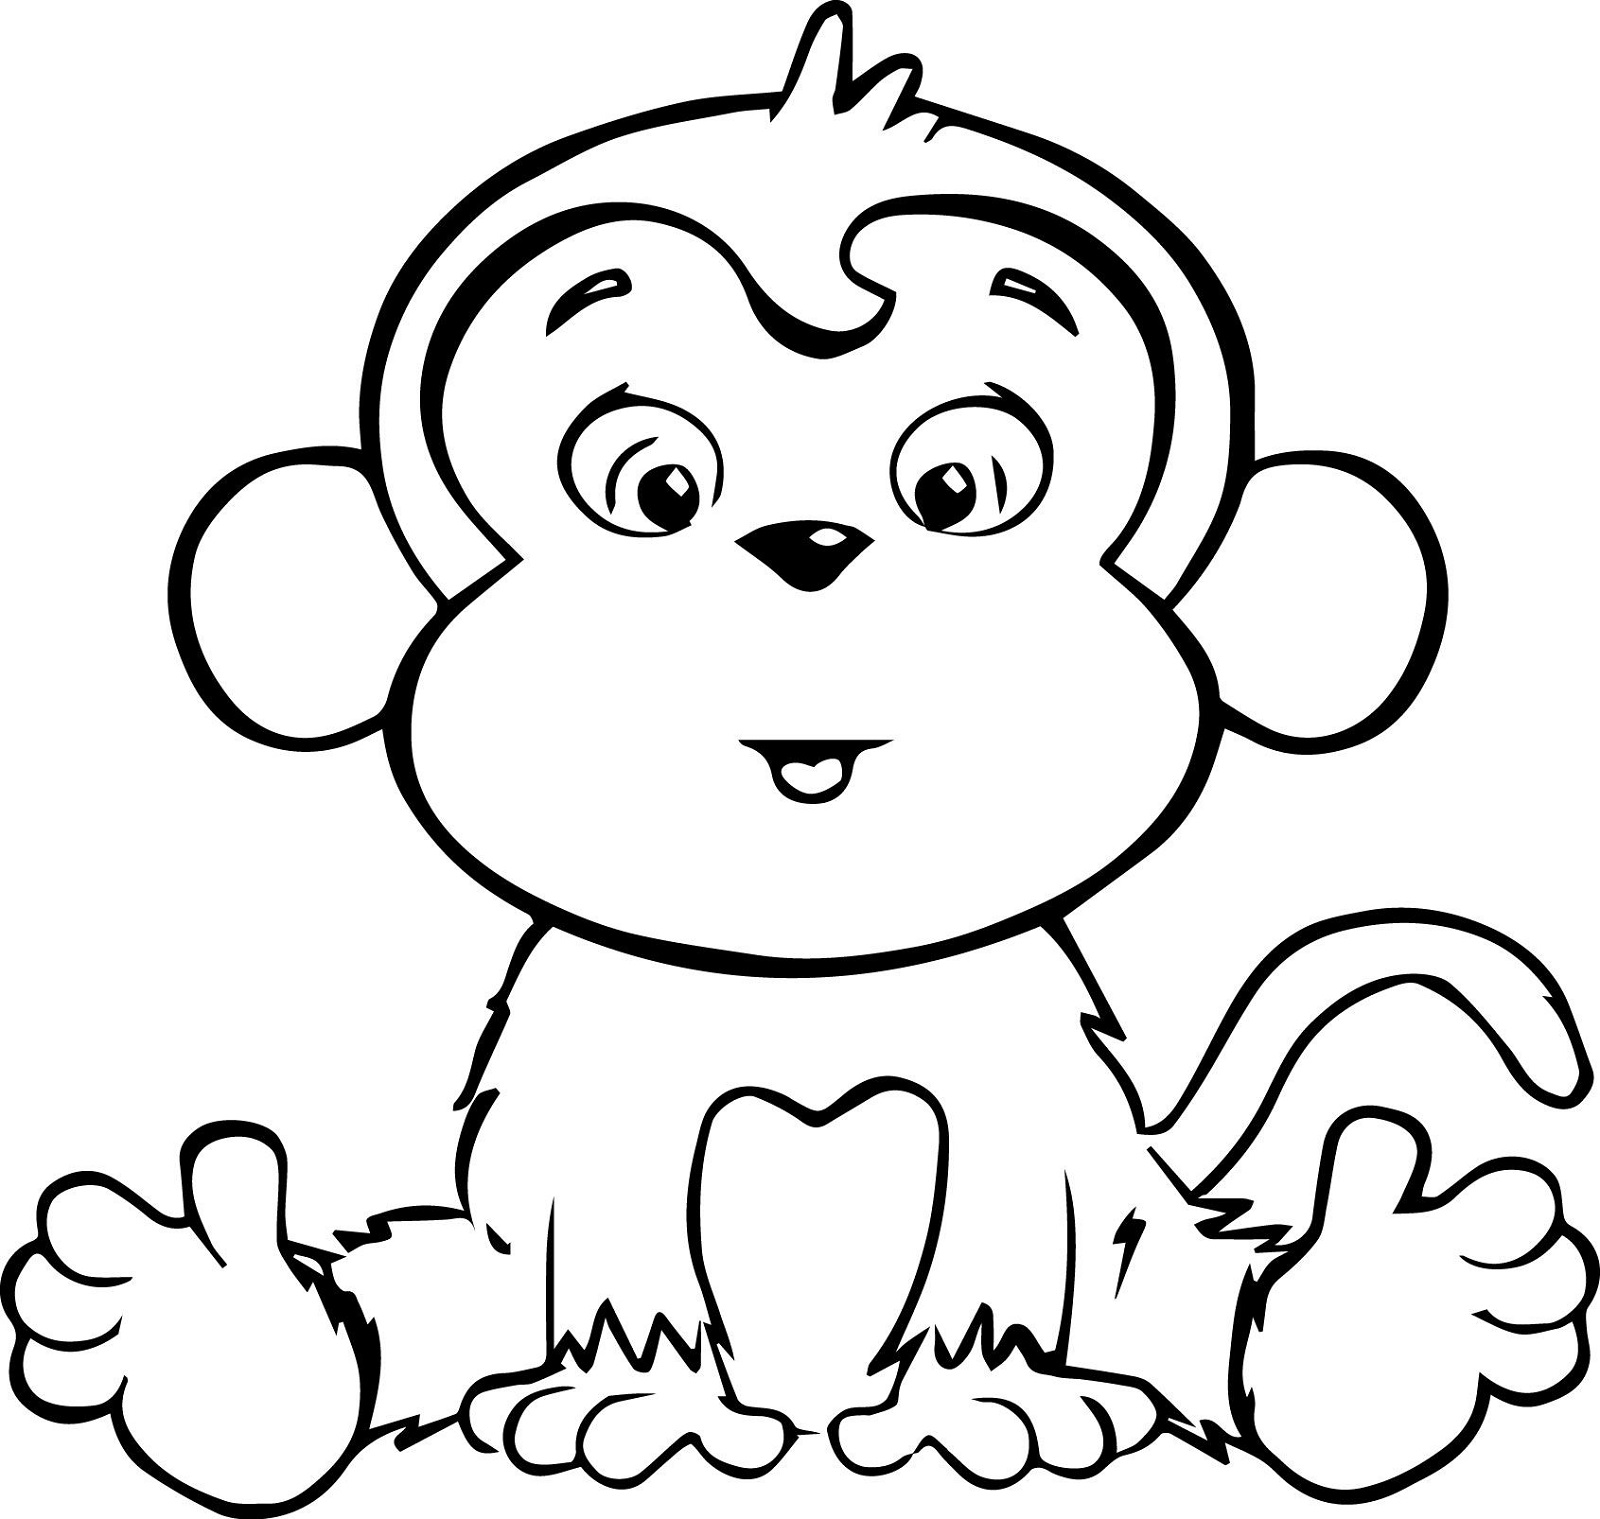 monkey coloring monkeys coloring pages worksheets loving printable monkey coloring